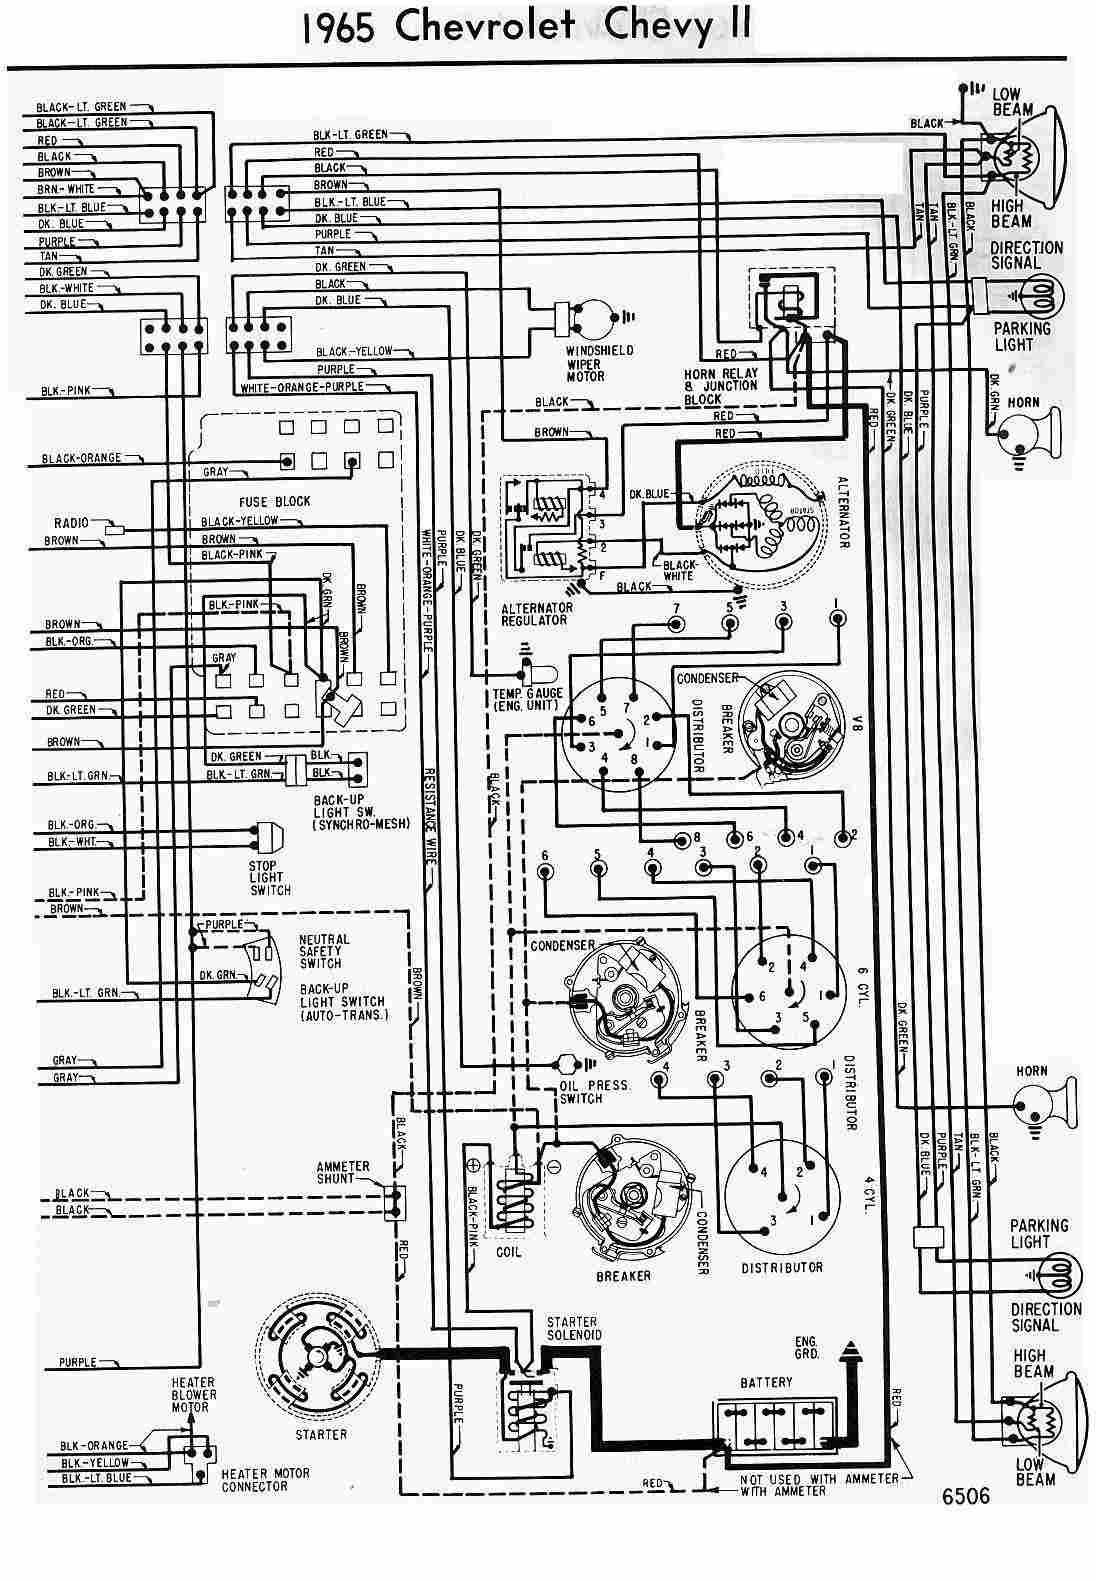 Chevrolet Car Manuals Wiring Diagrams Pdf Fault Codes Also 1977 Ford Truck On Best Diagram For Download